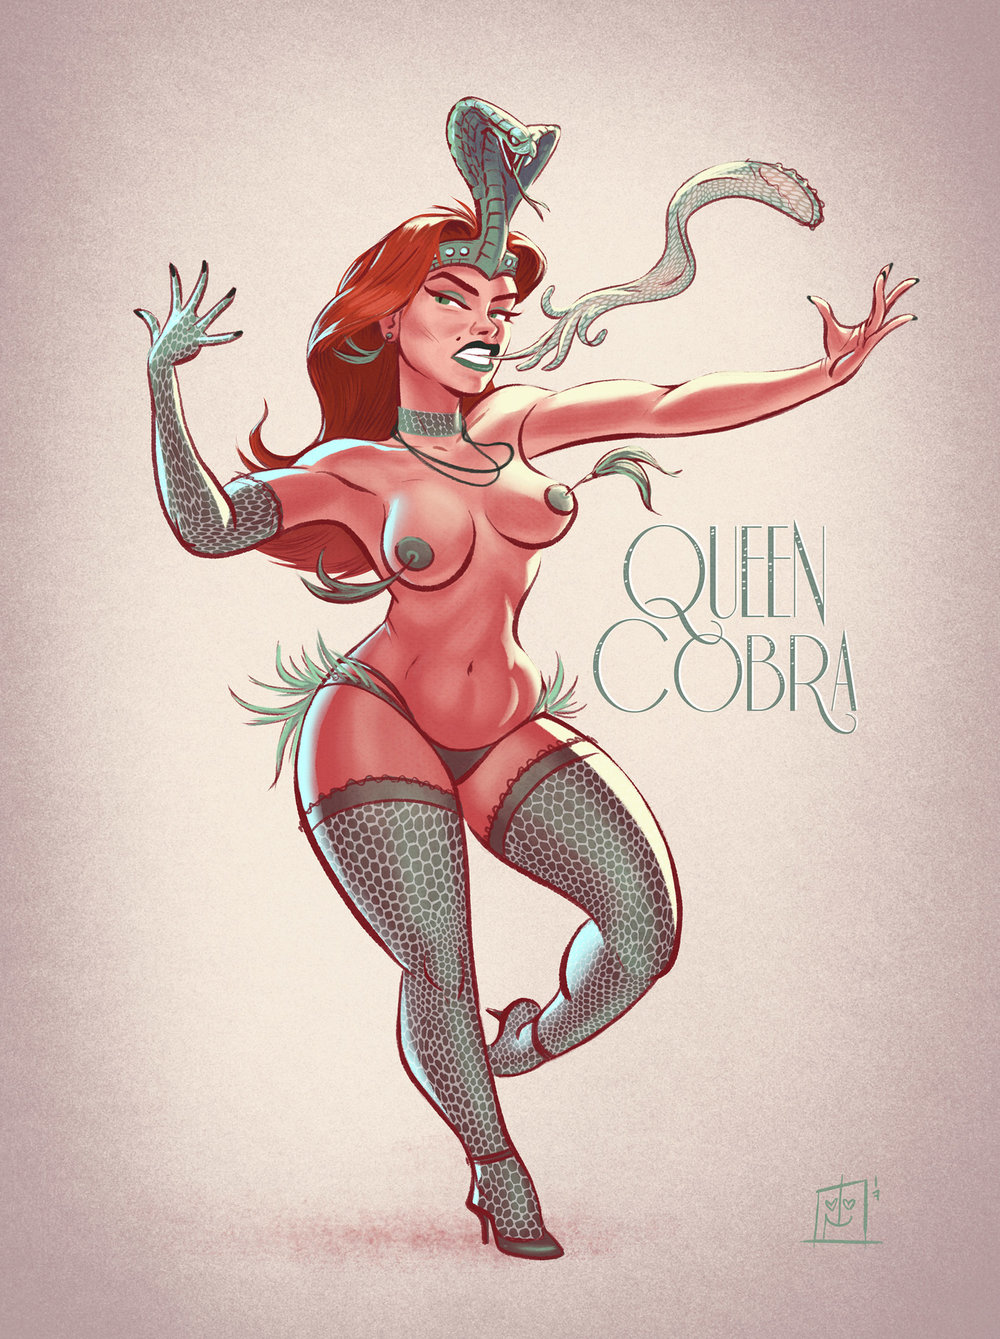 patrickgraf_burlesque_dancer_queencobra_2200x.jpg